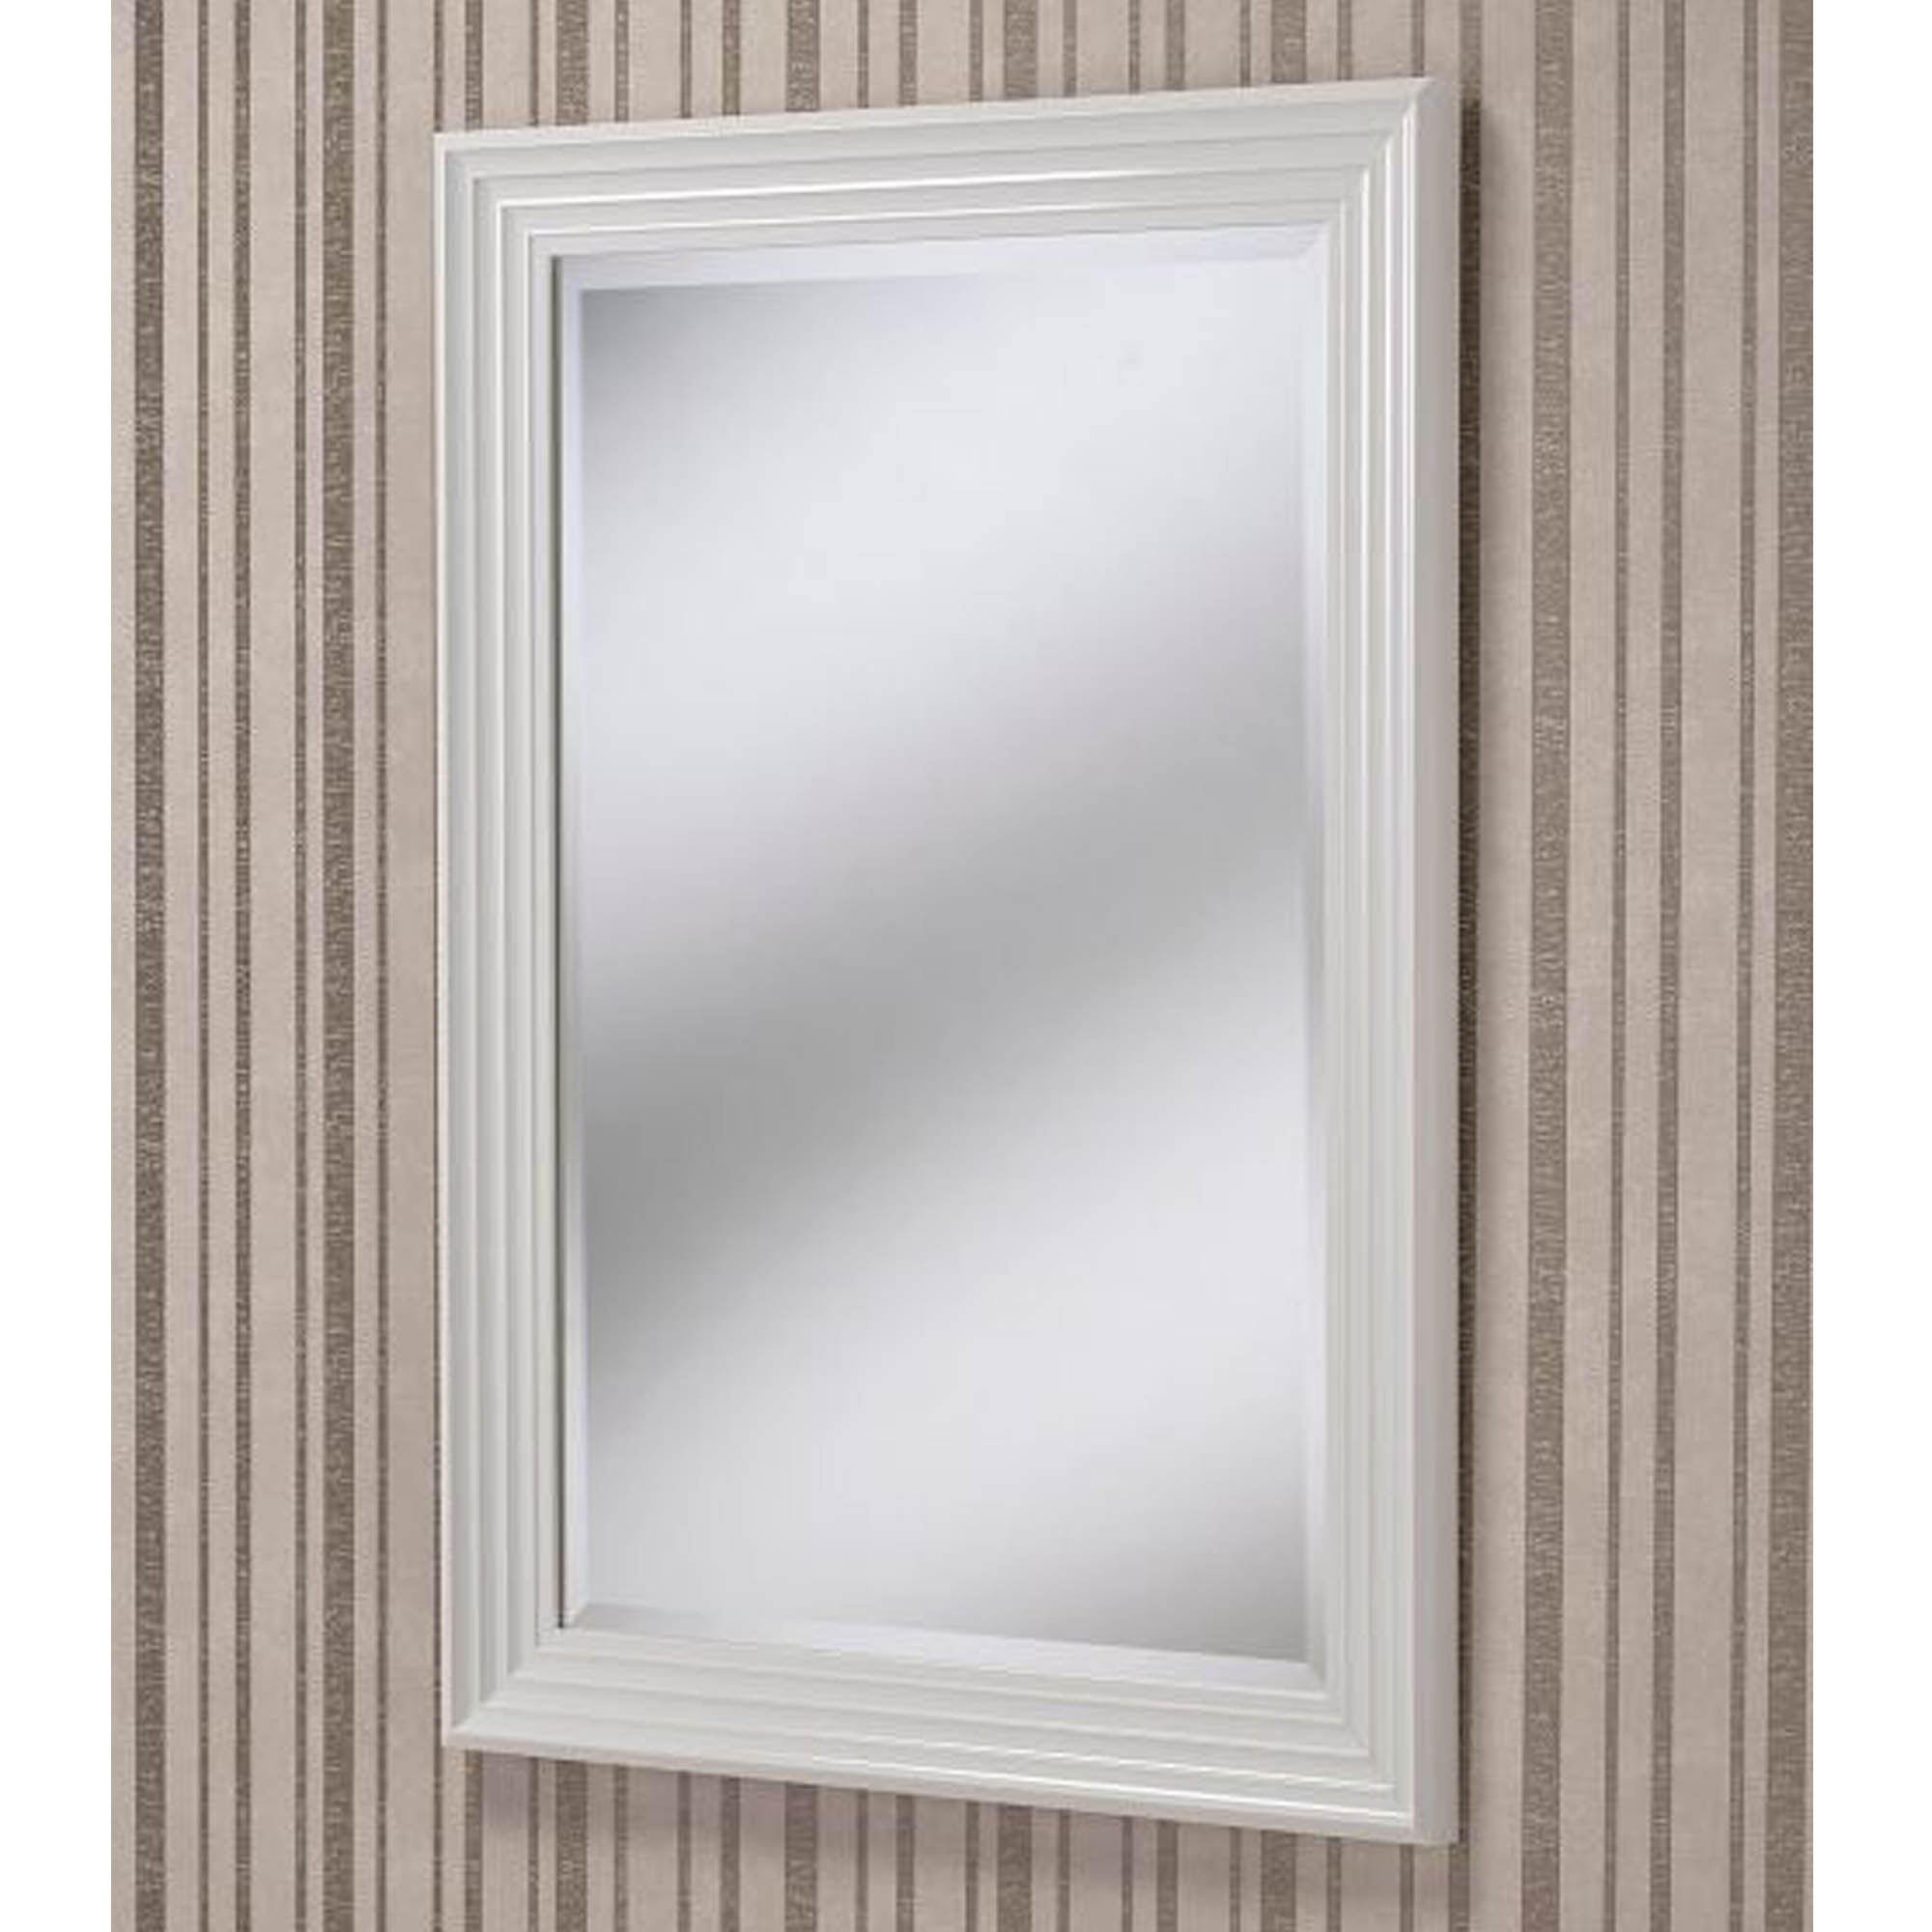 Beveled Wall Mirrors With Current Rectangular White Beveled Contemporary Wall Mirror (View 14 of 20)